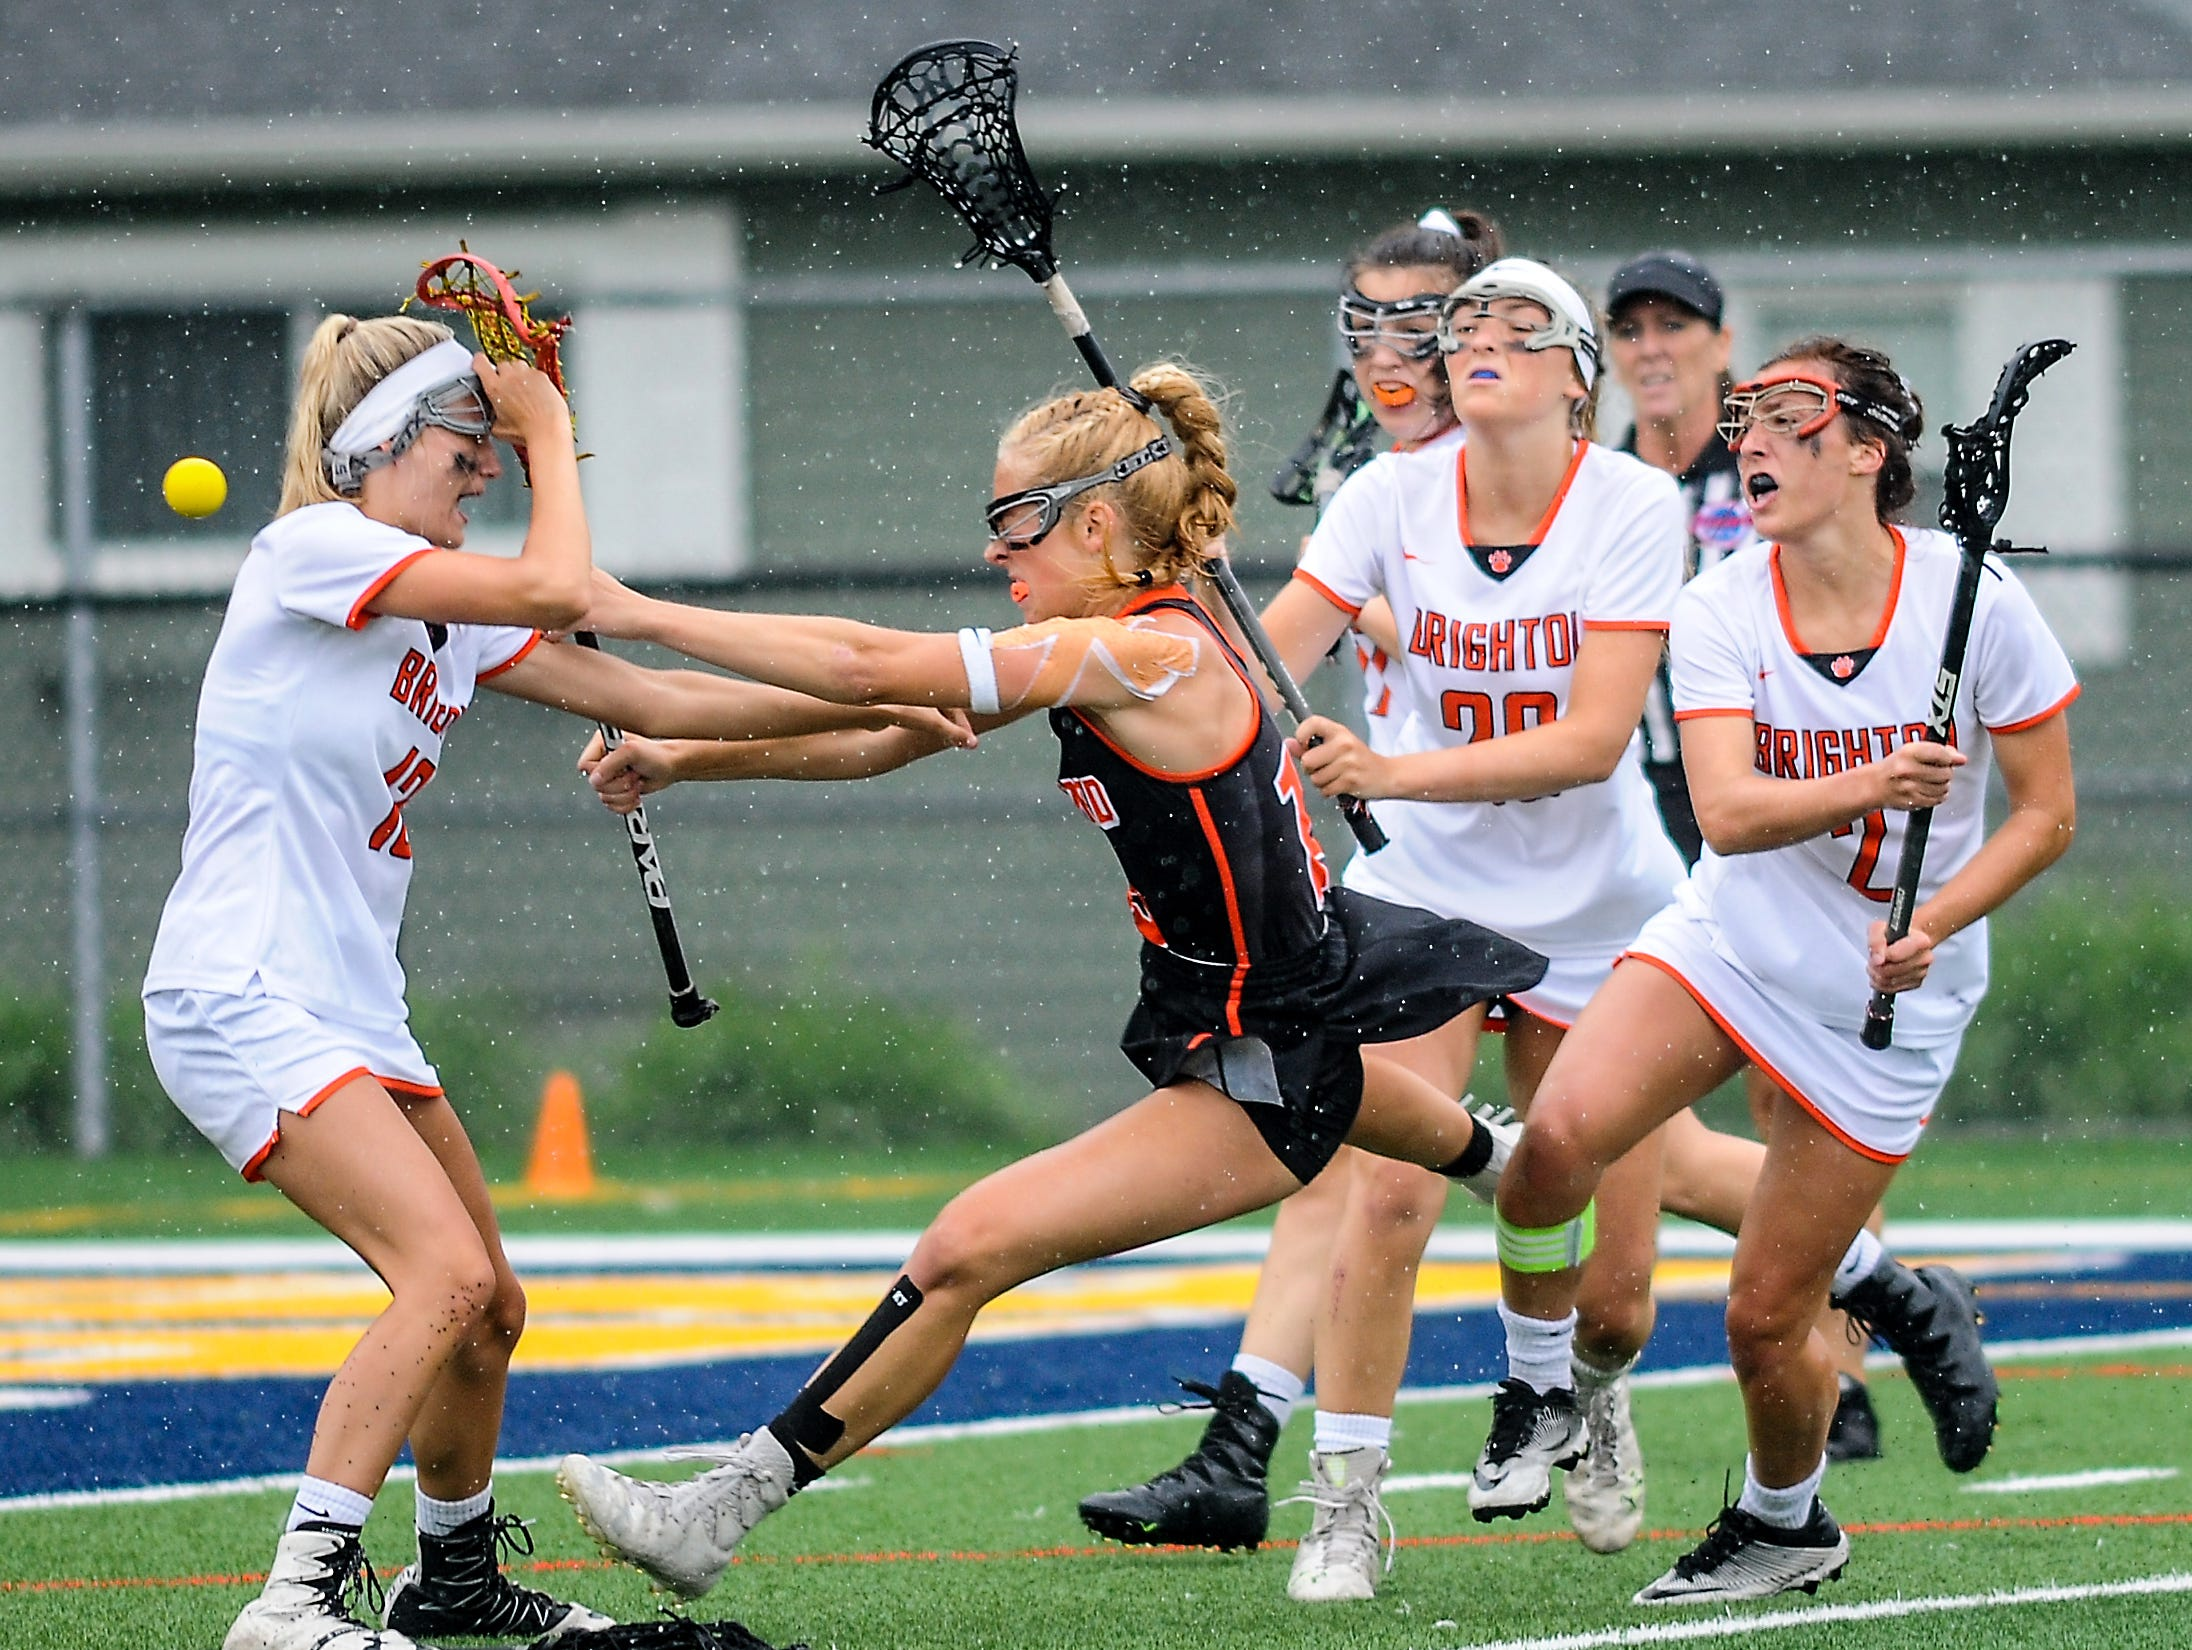 Brighton and Rockford compete in the Division 1 Girls Lacrosse Championship game Saturday, June 9, 2018.